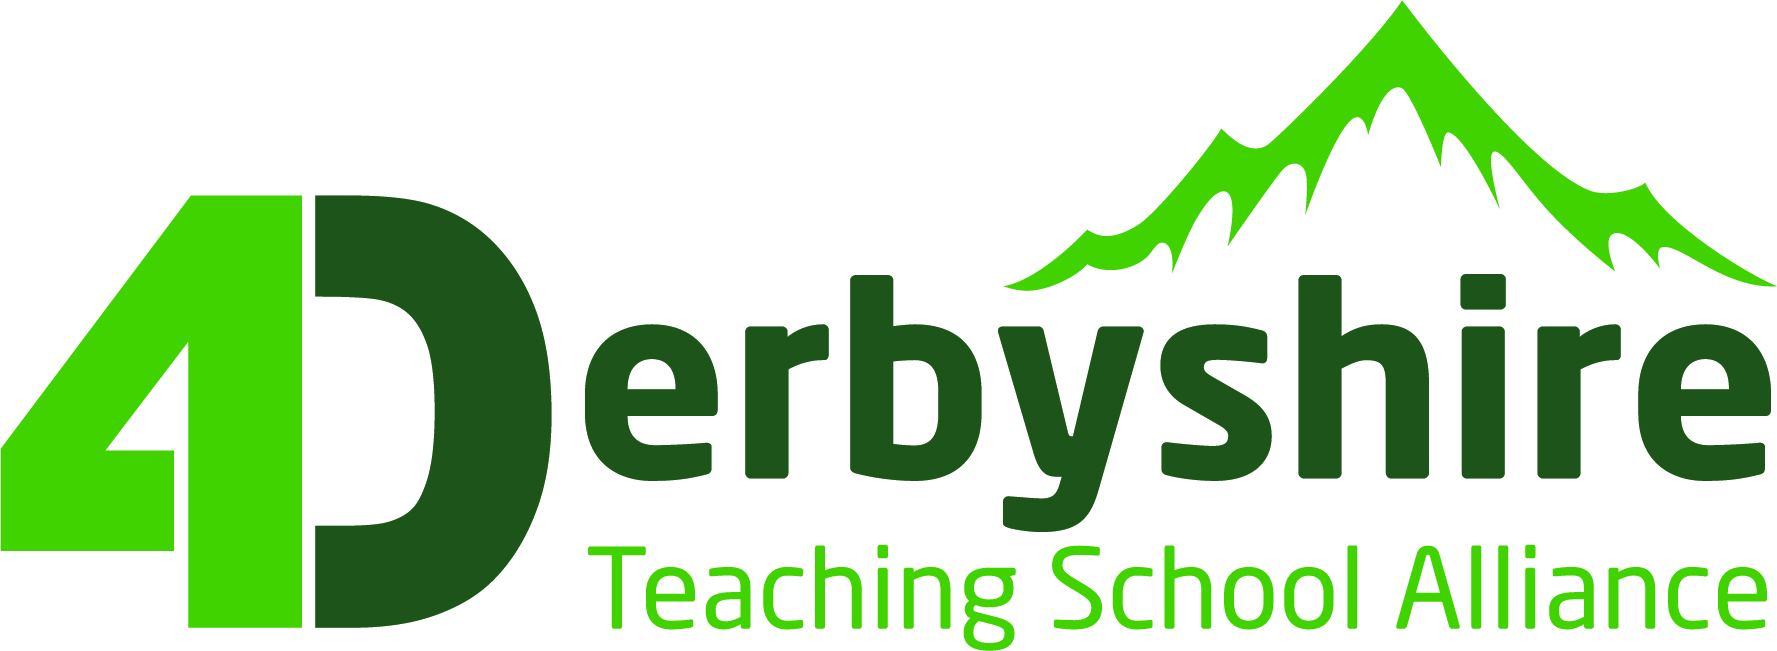 4Derbyshire Teaching School Alliance